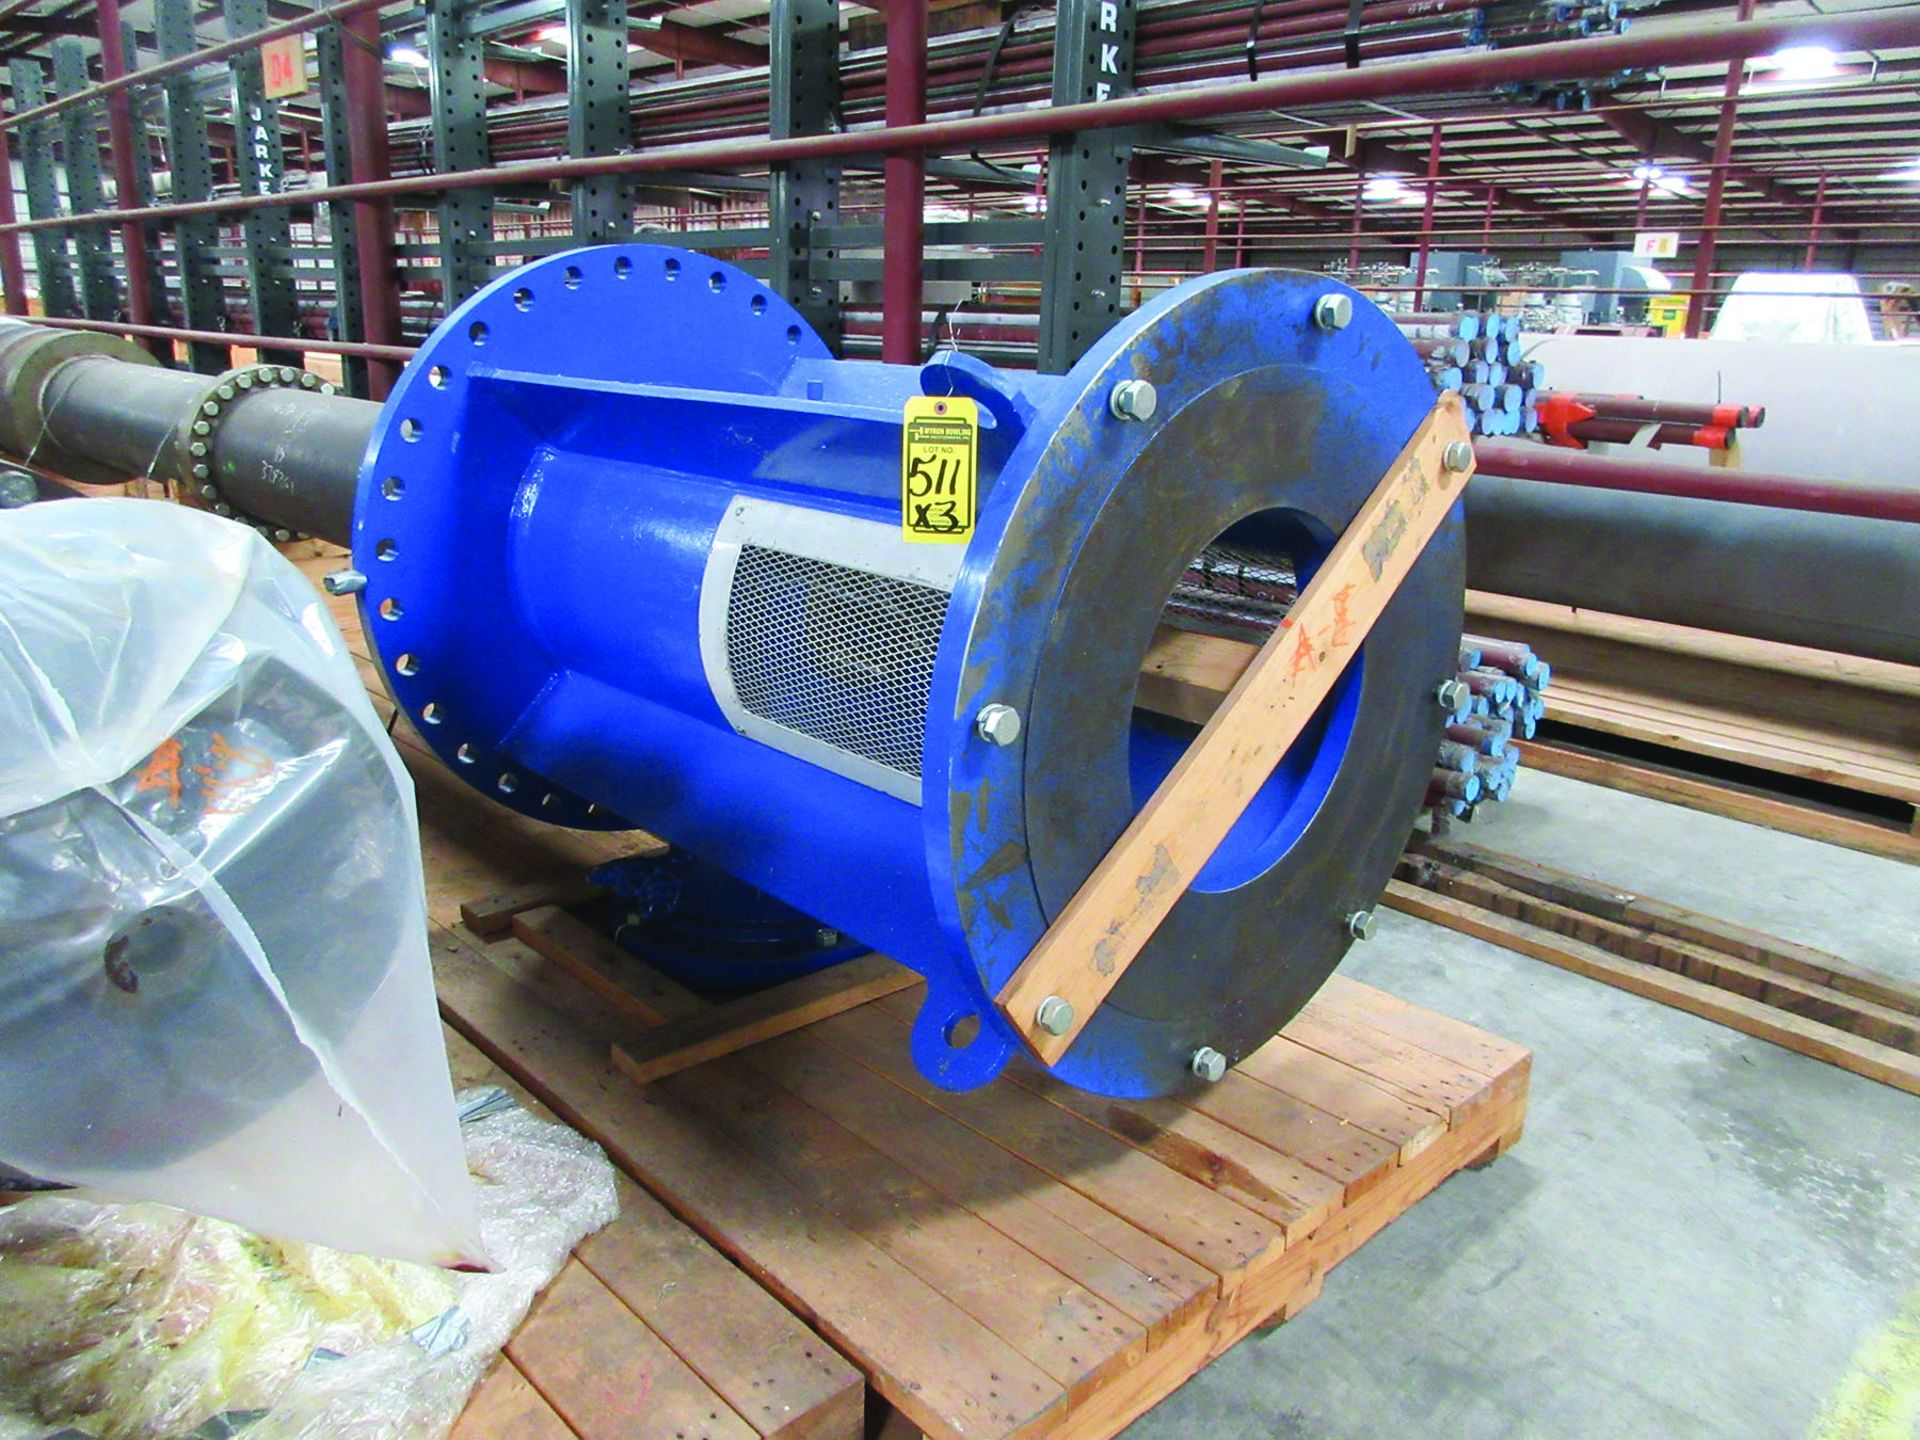 (3) 2008 RUHRPUMPEN 26DX24LQ 4-STAGE PUMPS, 3610 GMP, HYD. PRESSURE 75 PSI - 915 PSI, MAWP 50 - - Image 5 of 5